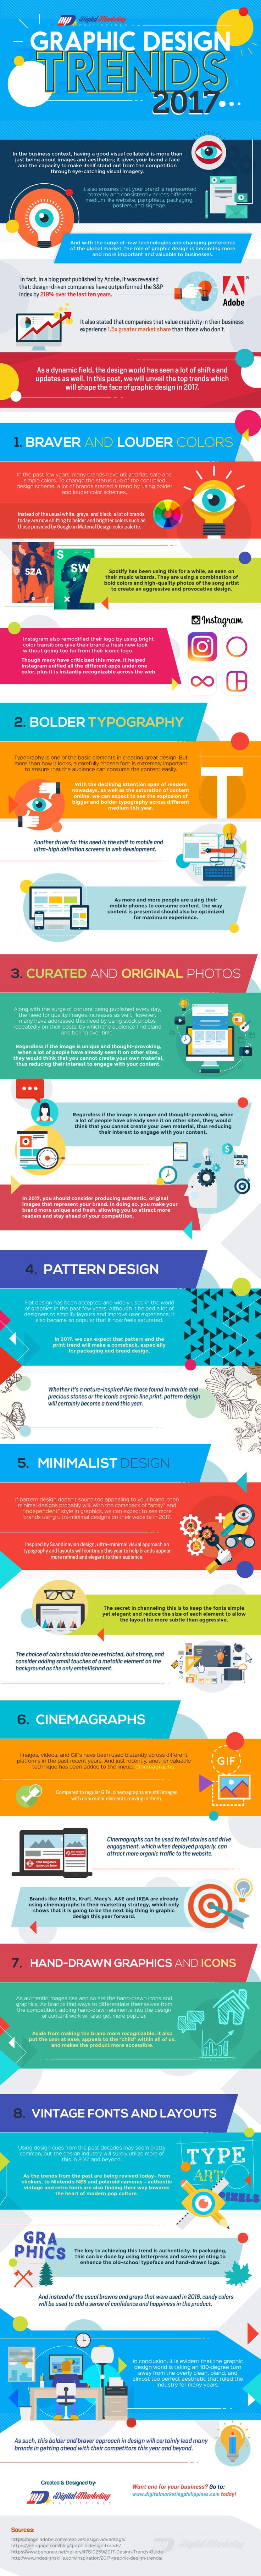 The Top 8 Graphic Design Trends in 2017 [Infographic]